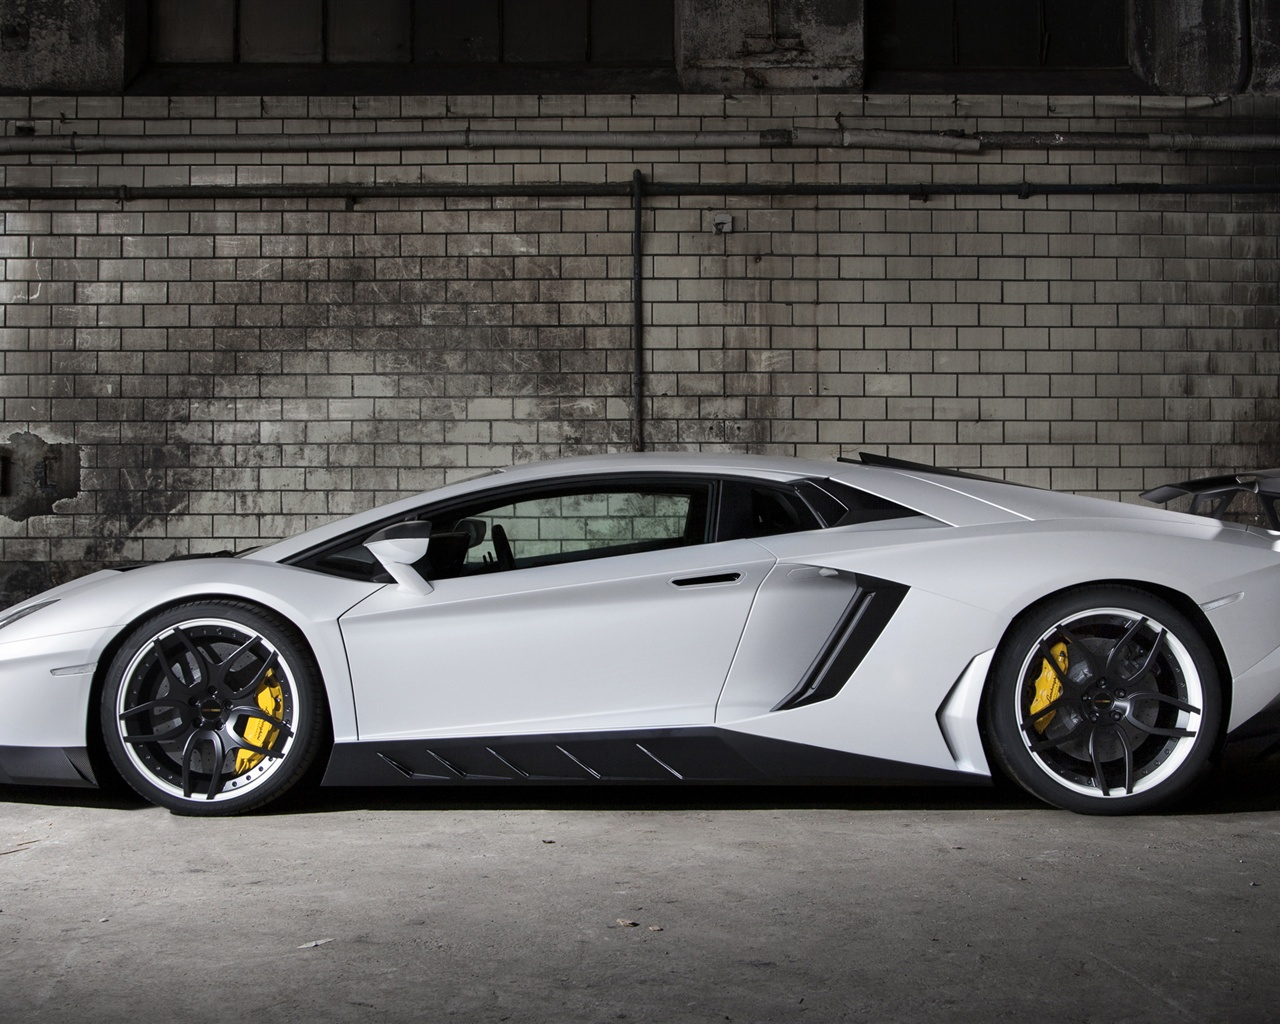 las luxury los angeles sports lamborghini rental exotic to la rent a vegas strip in on car